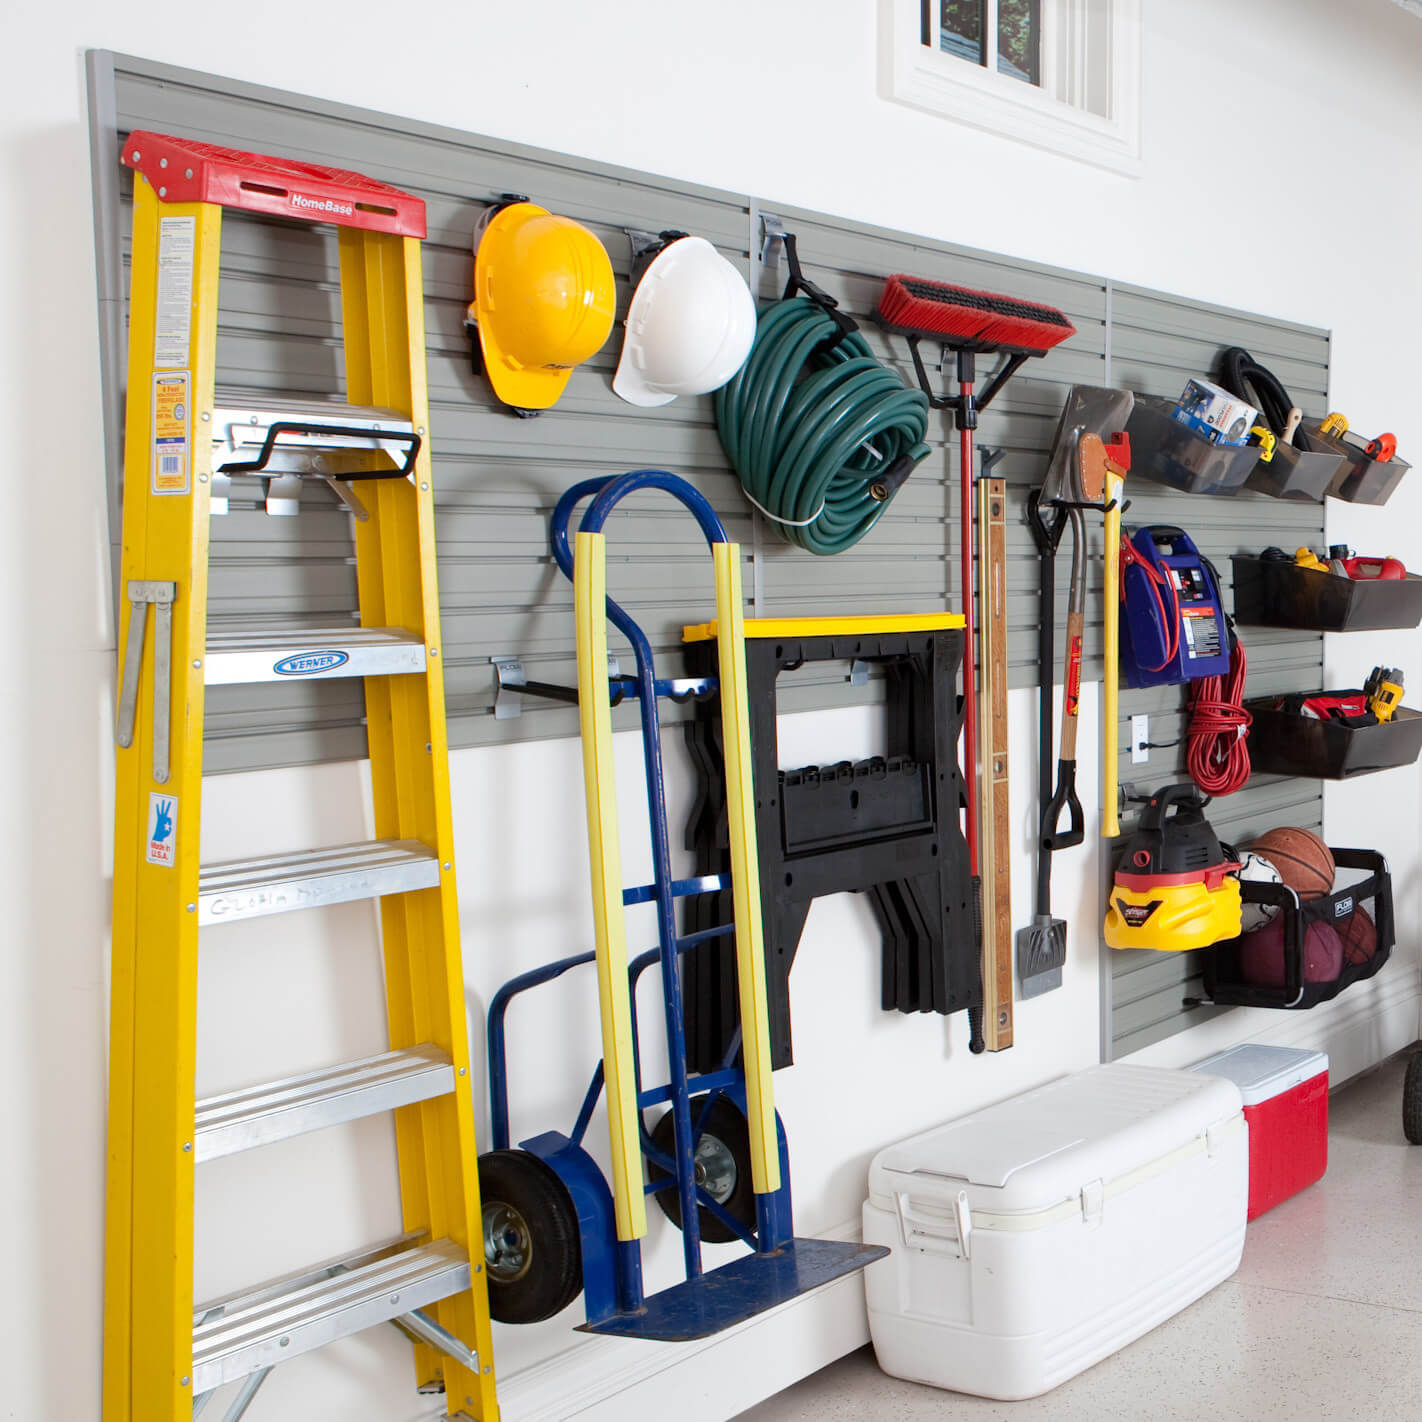 This wall rack allows you to customize the hangers so that you can hang all kinds of items and baskets.